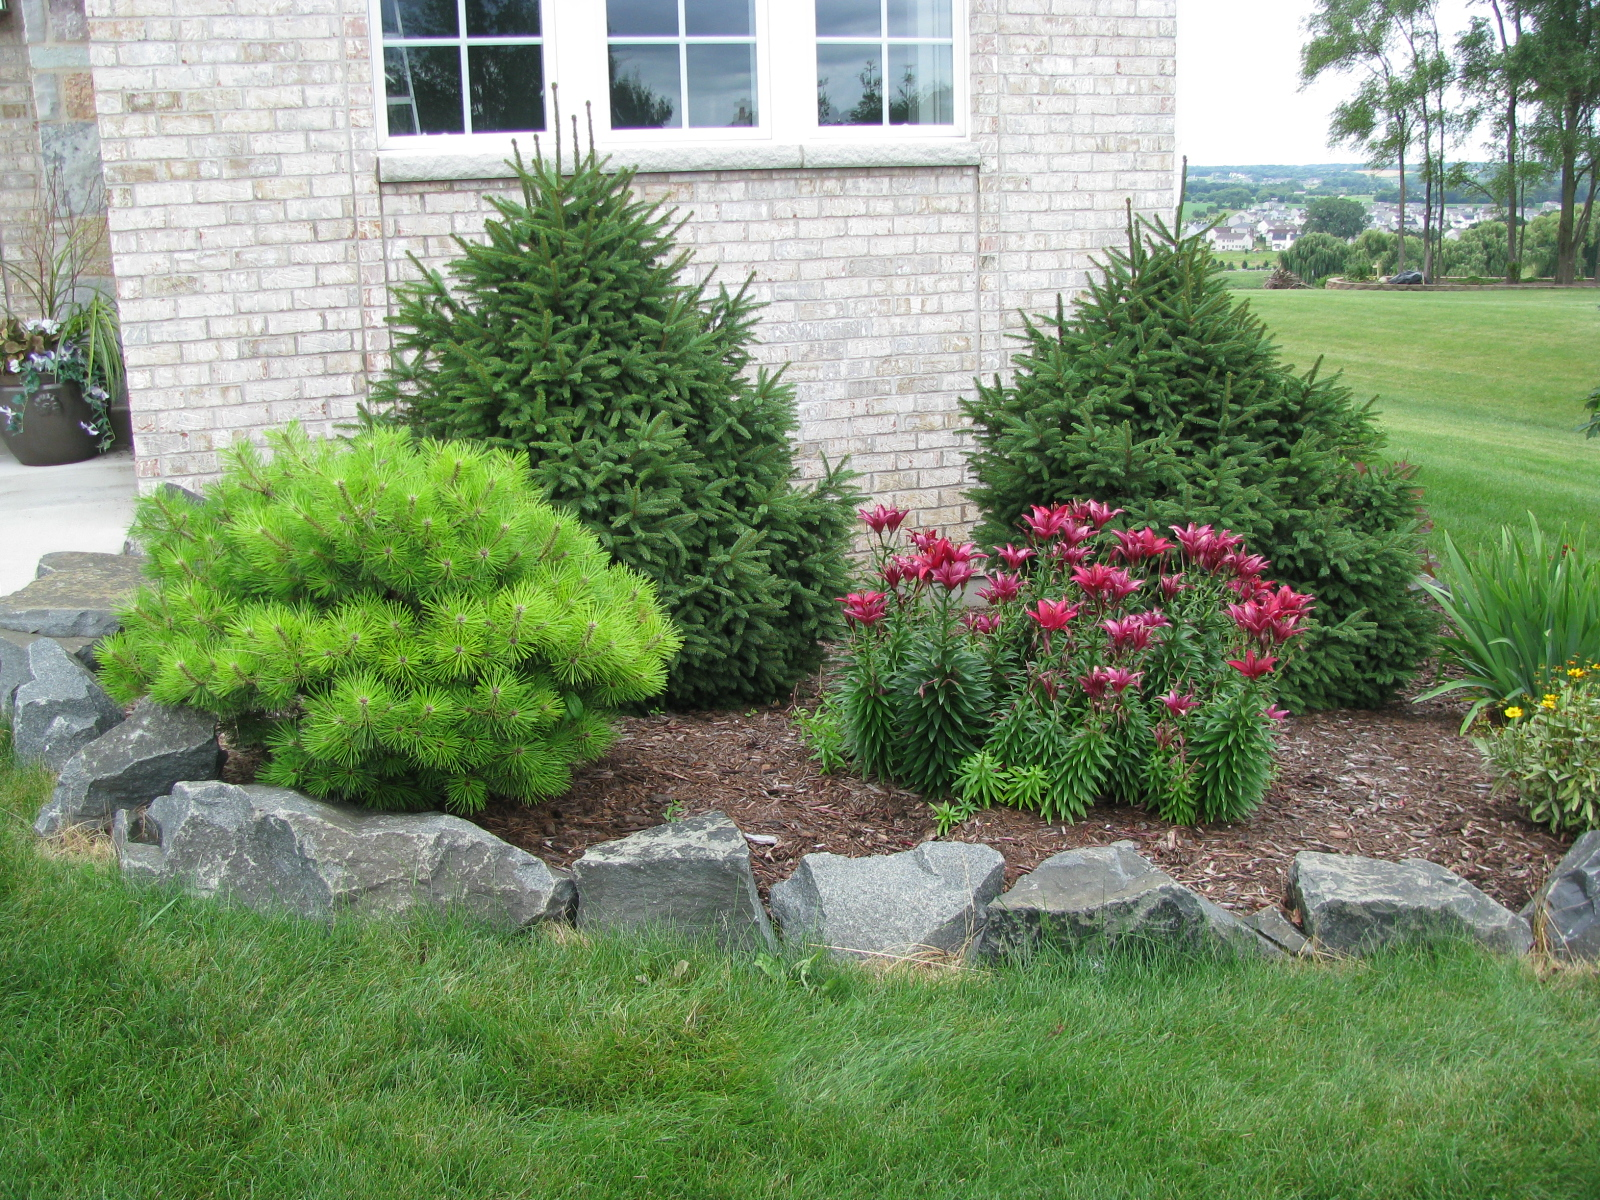 Garden flower bed ideas native garden design for Garden lawn ideas